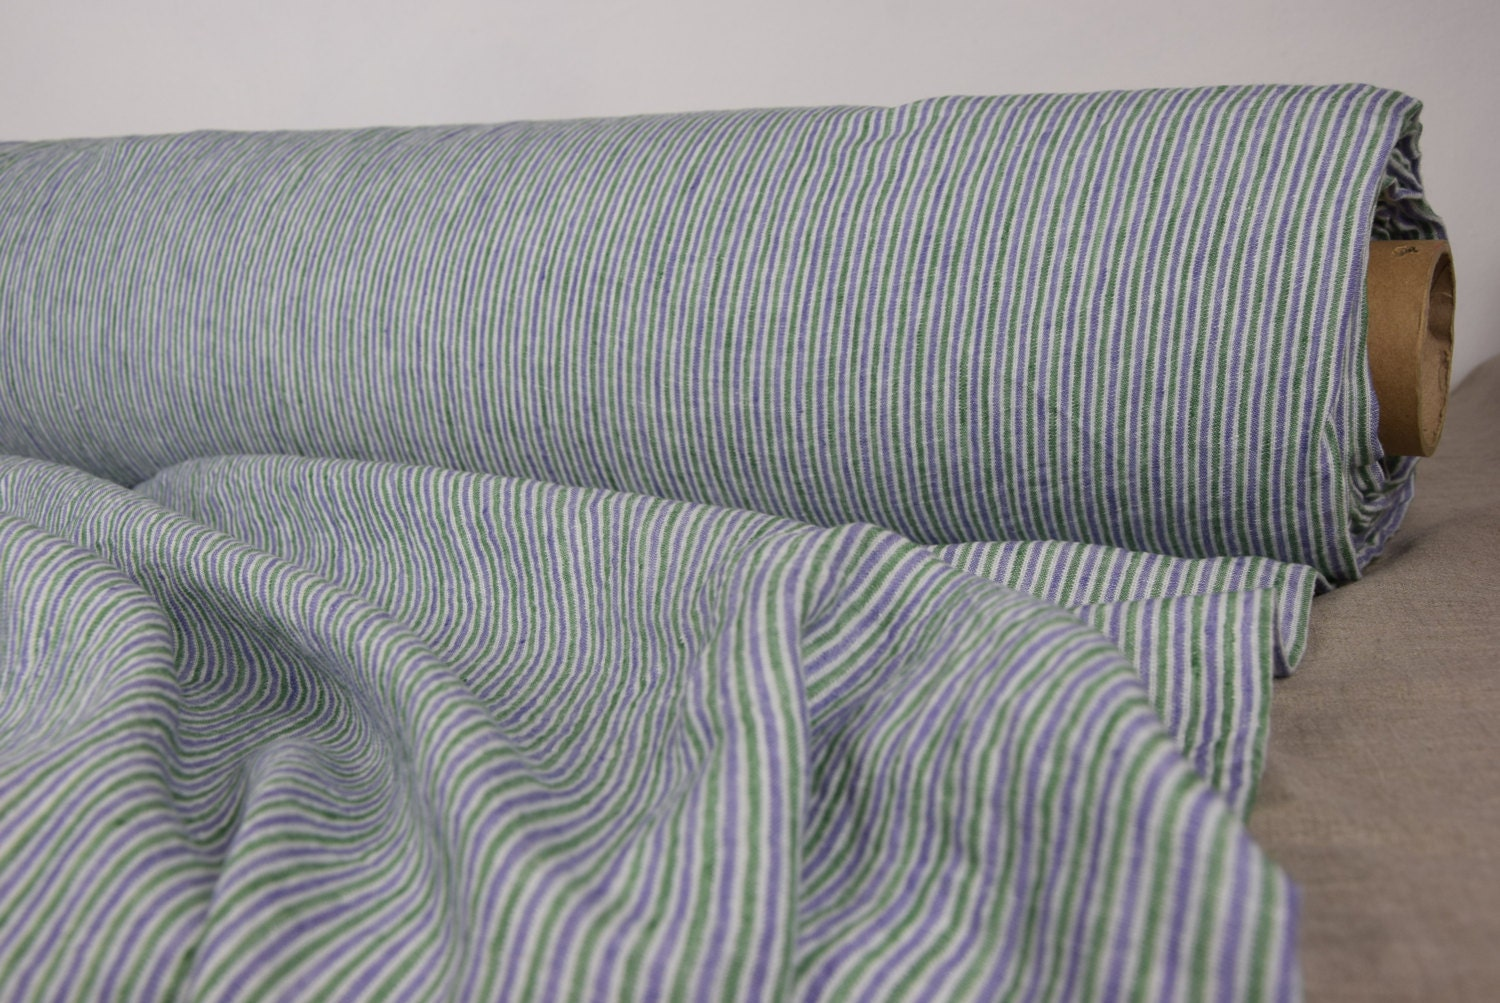 Pure 100% linen fabric 160gsm. Off-white green